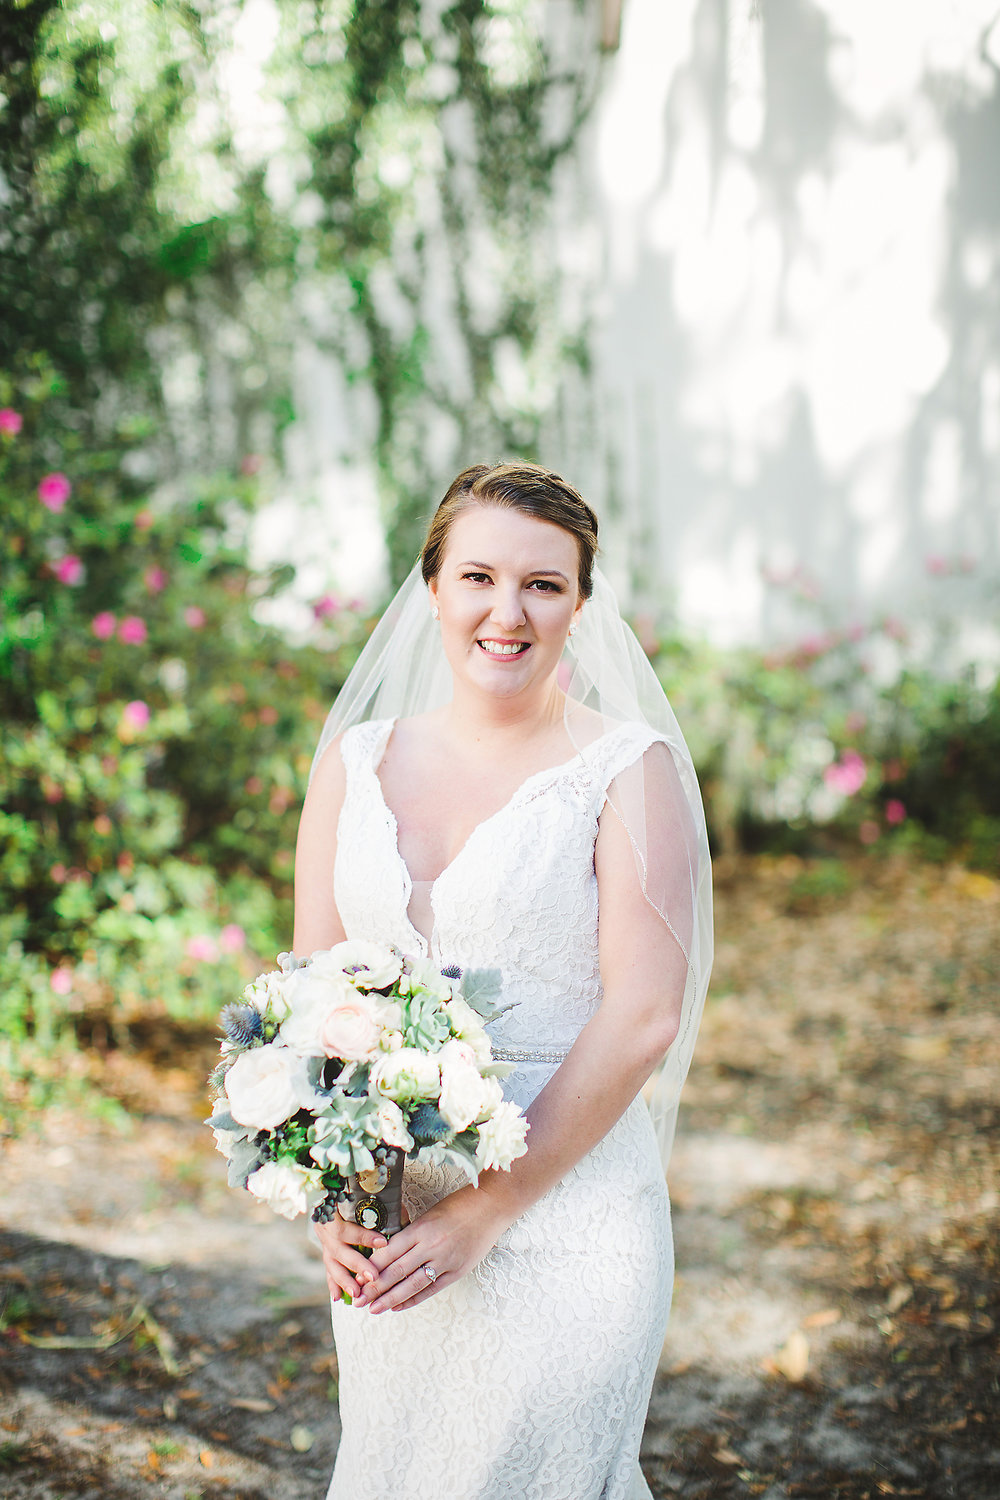 Izzy Hudgins Wedding Photography bride poses